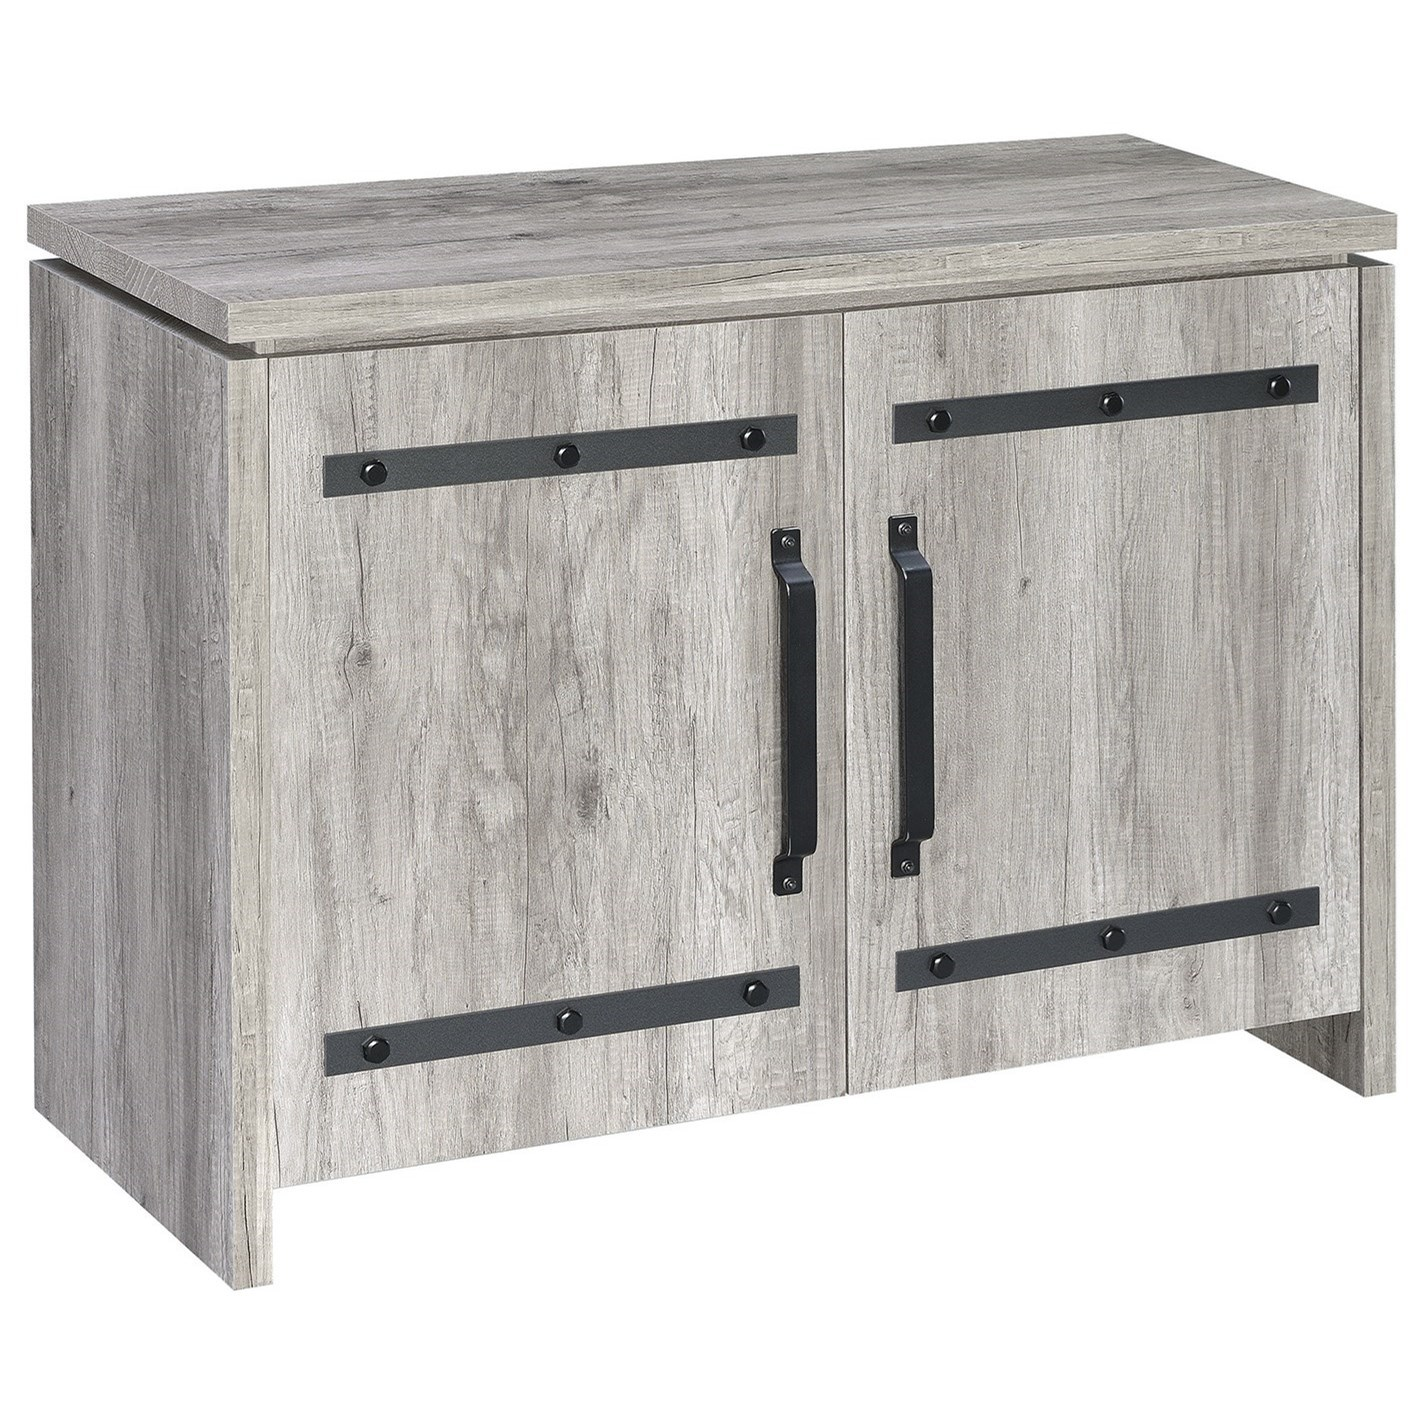 Accent Cabinets Accent Cabinet by Coaster at Northeast Factory Direct